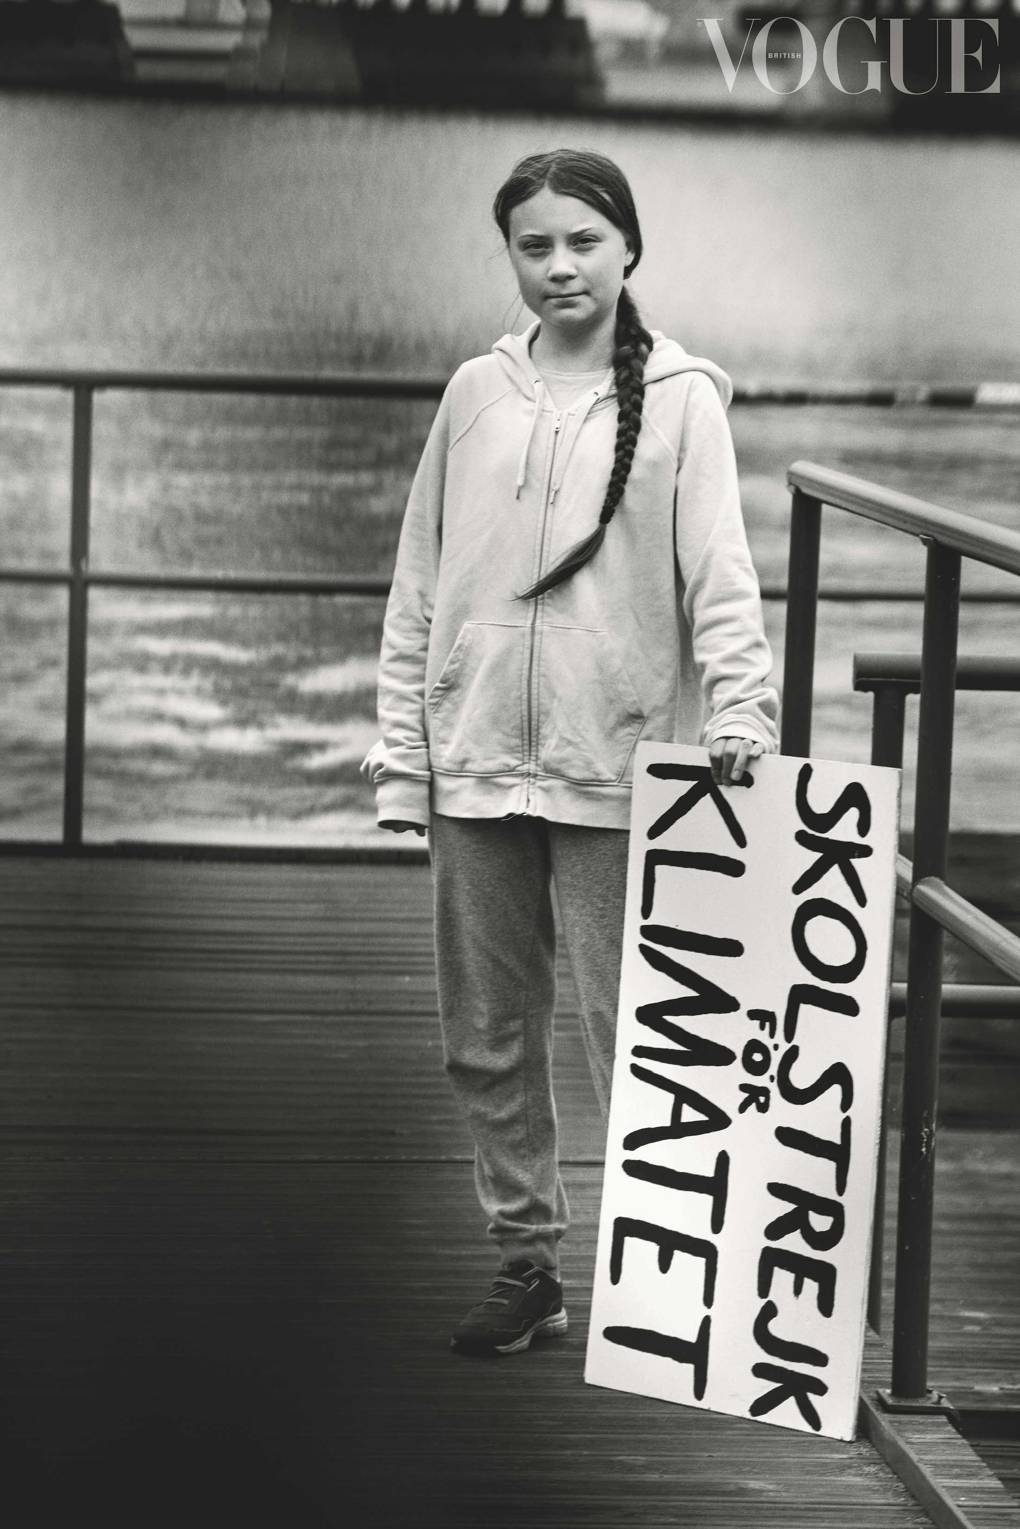 Greta Thunberg, climate change campaigner and student